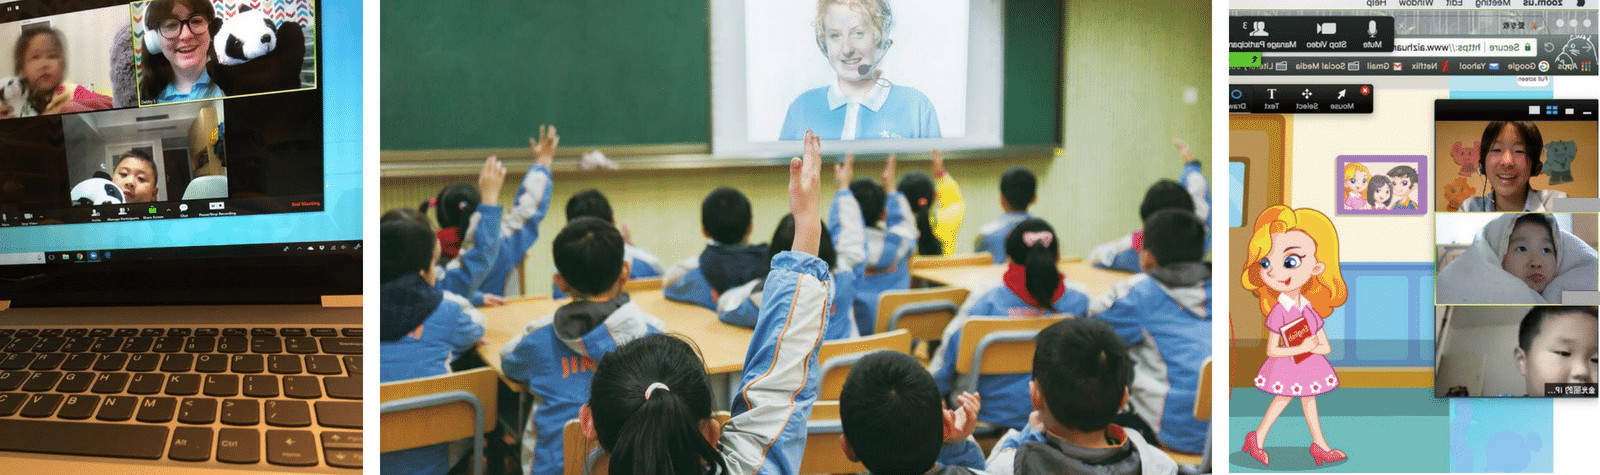 How to Work With Different Personalities in Your Classroom